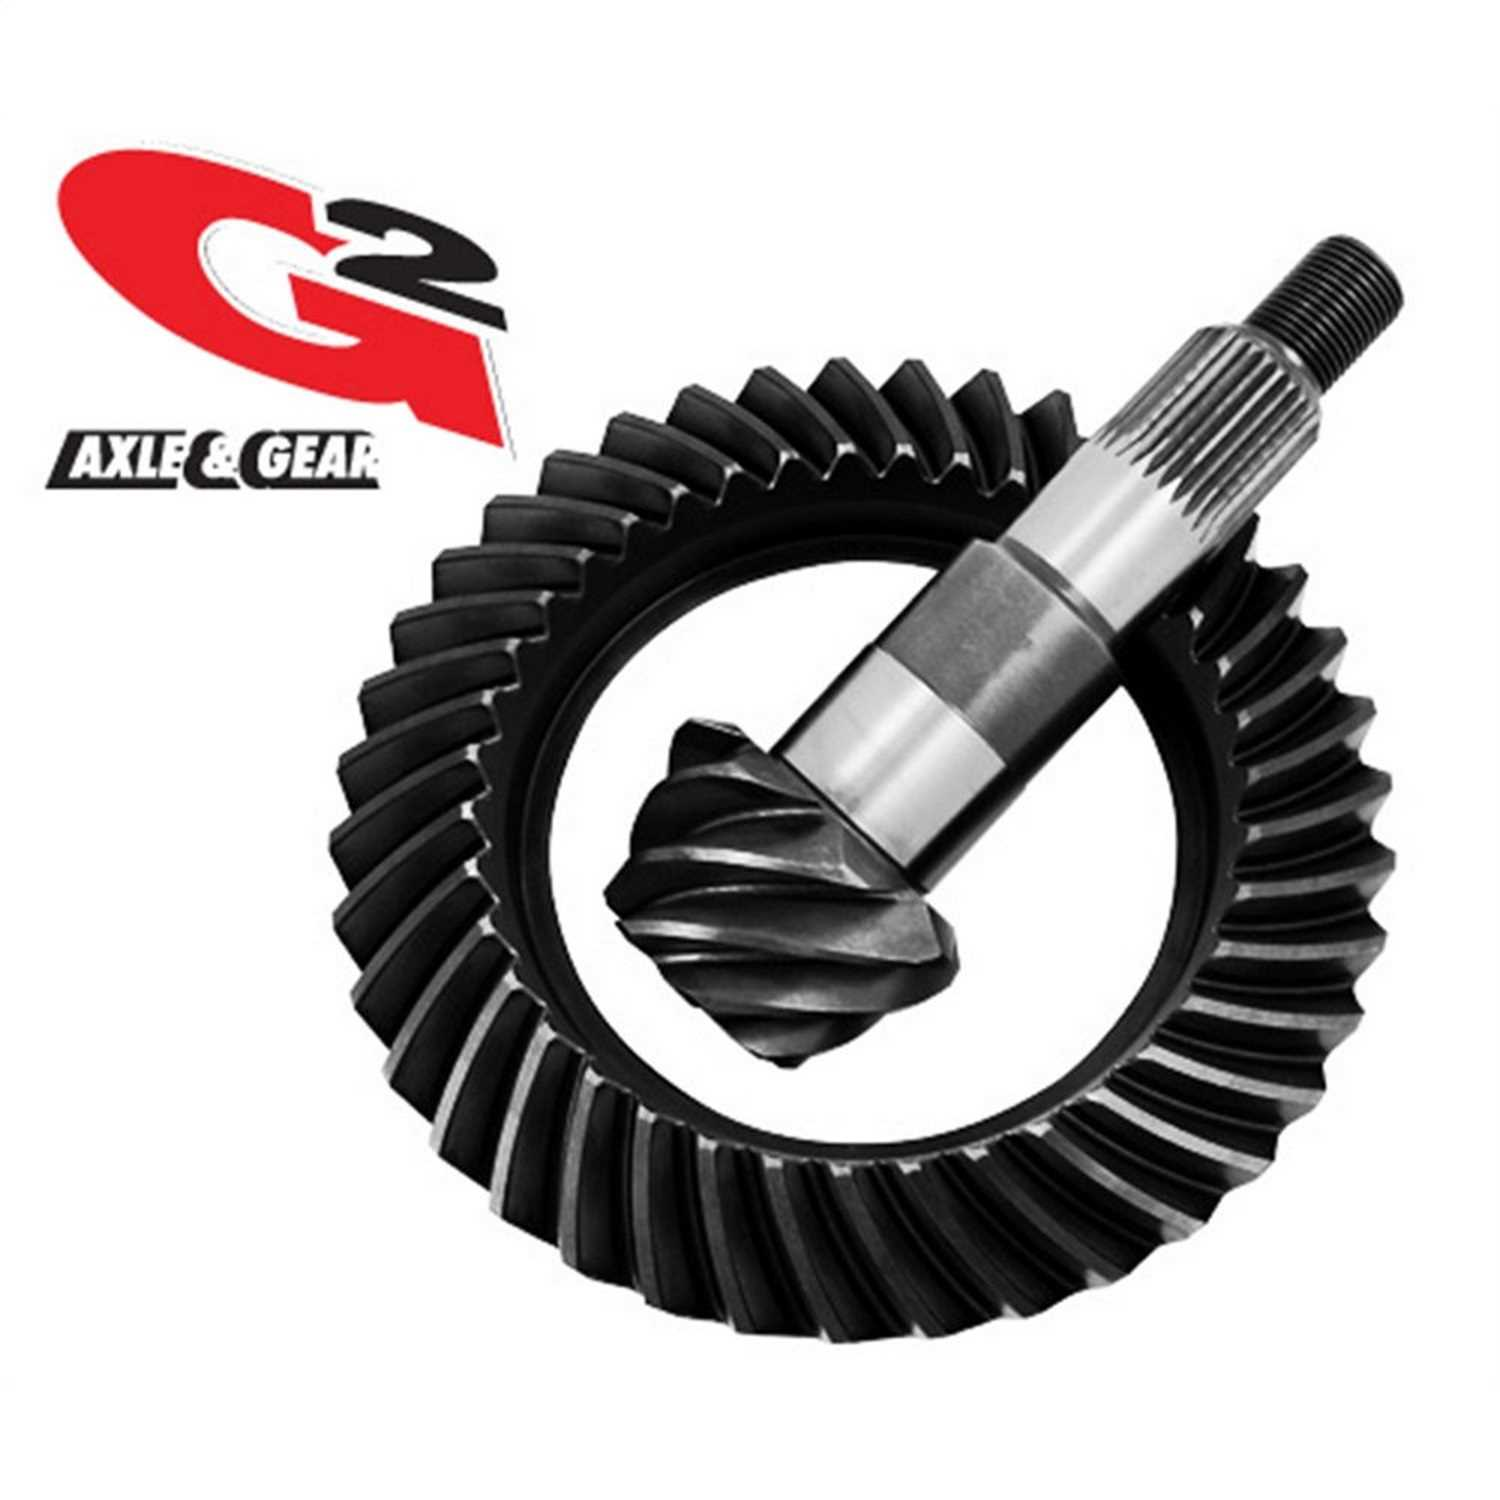 1-2026-456 G2 Axle and Gear Ring and Pinion Set